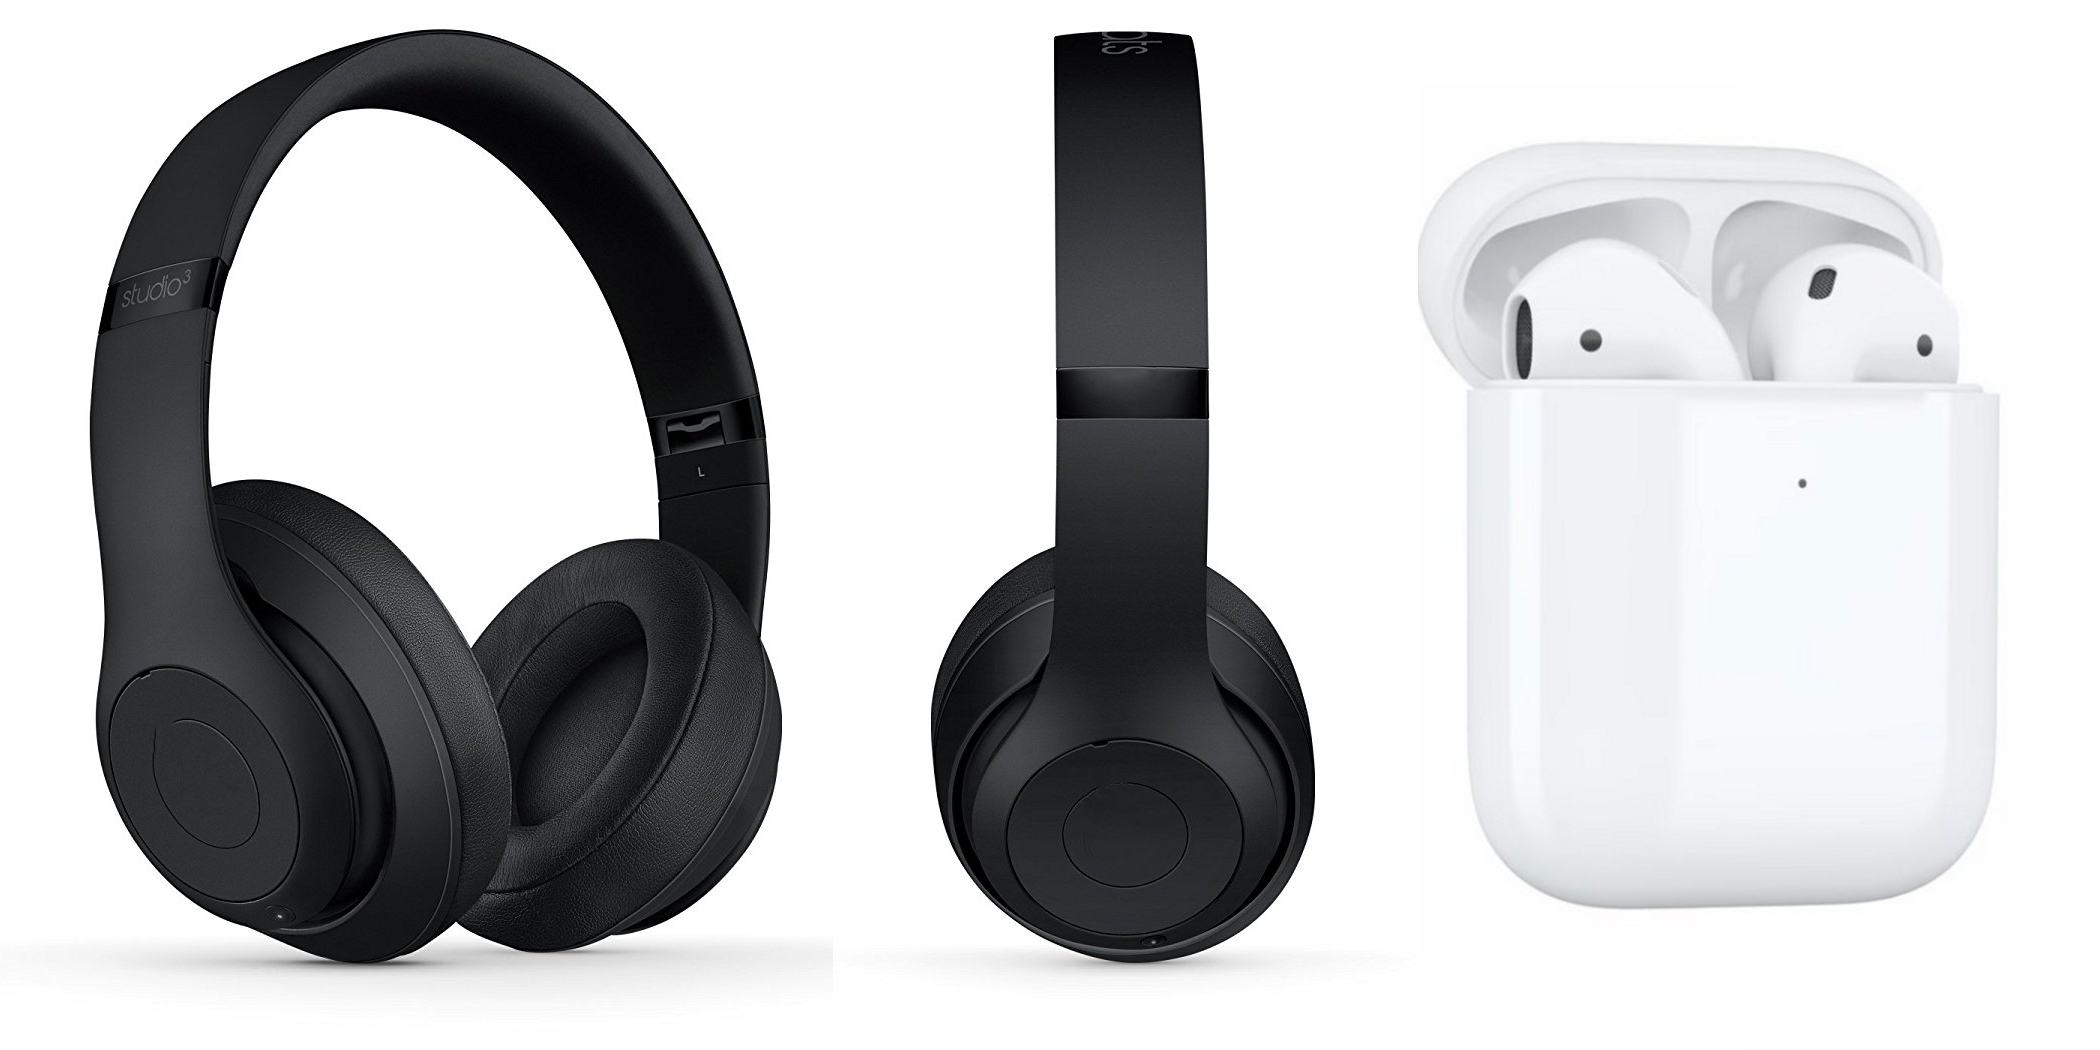 Kgi Apple To Release All New High End Over Ear Headphones Later This Year 9to5mac